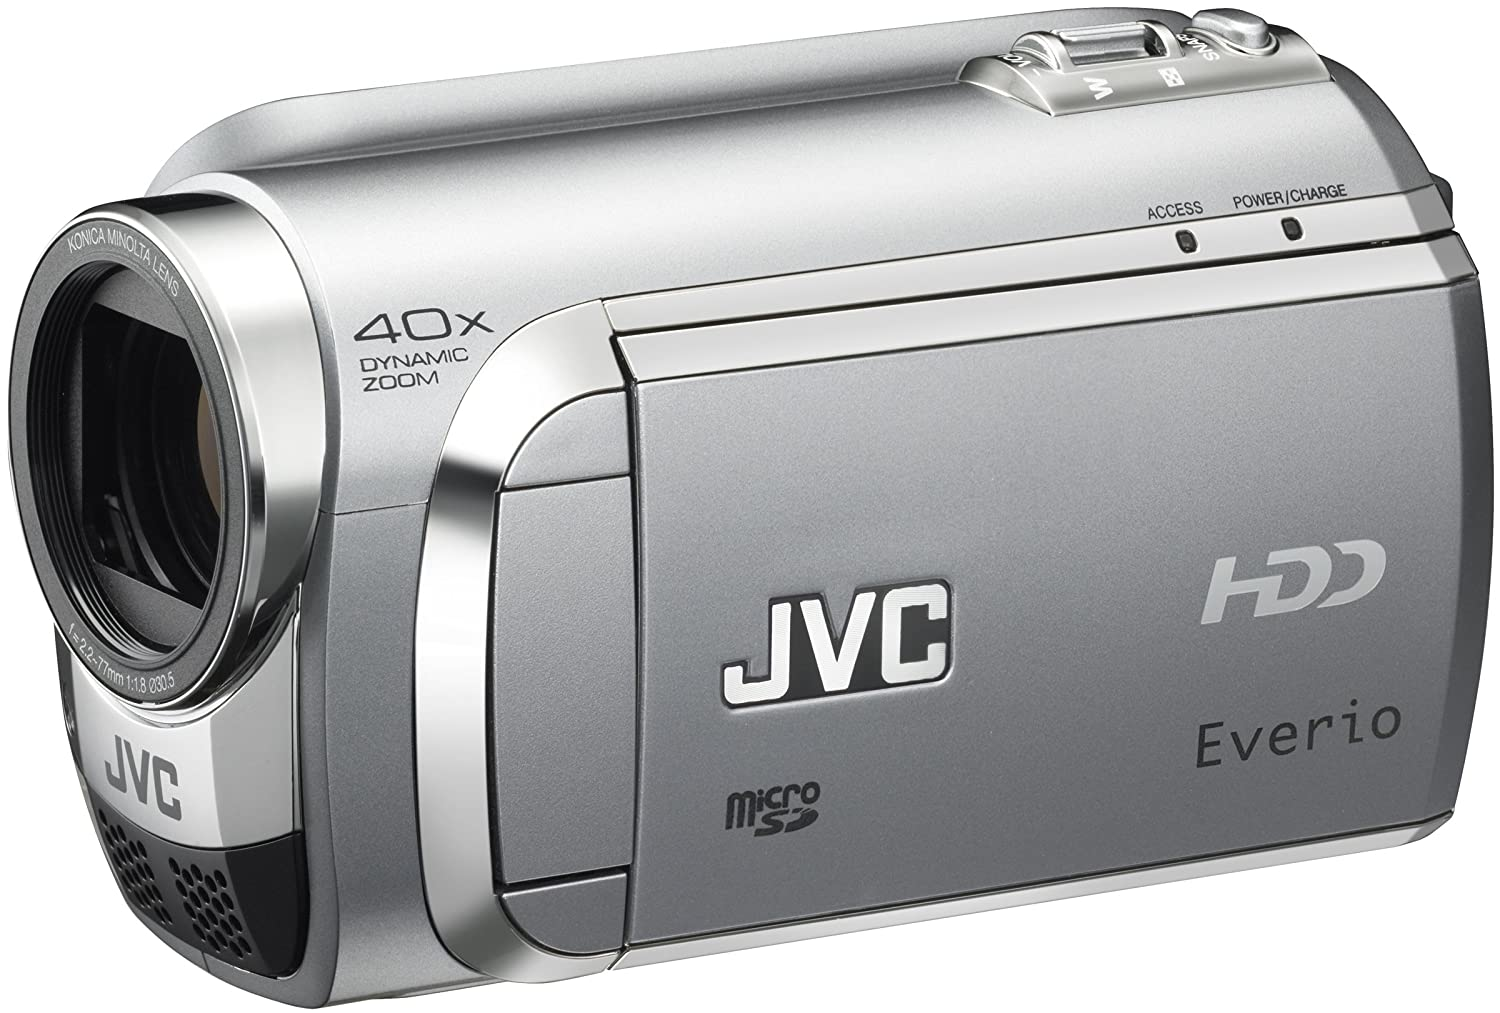 jvc everio gz mg630 60gb standard def camcorder blue discontinued rh amazon ca jvc everio gz-mg630au manual jvc everio gz-mg630 manual español